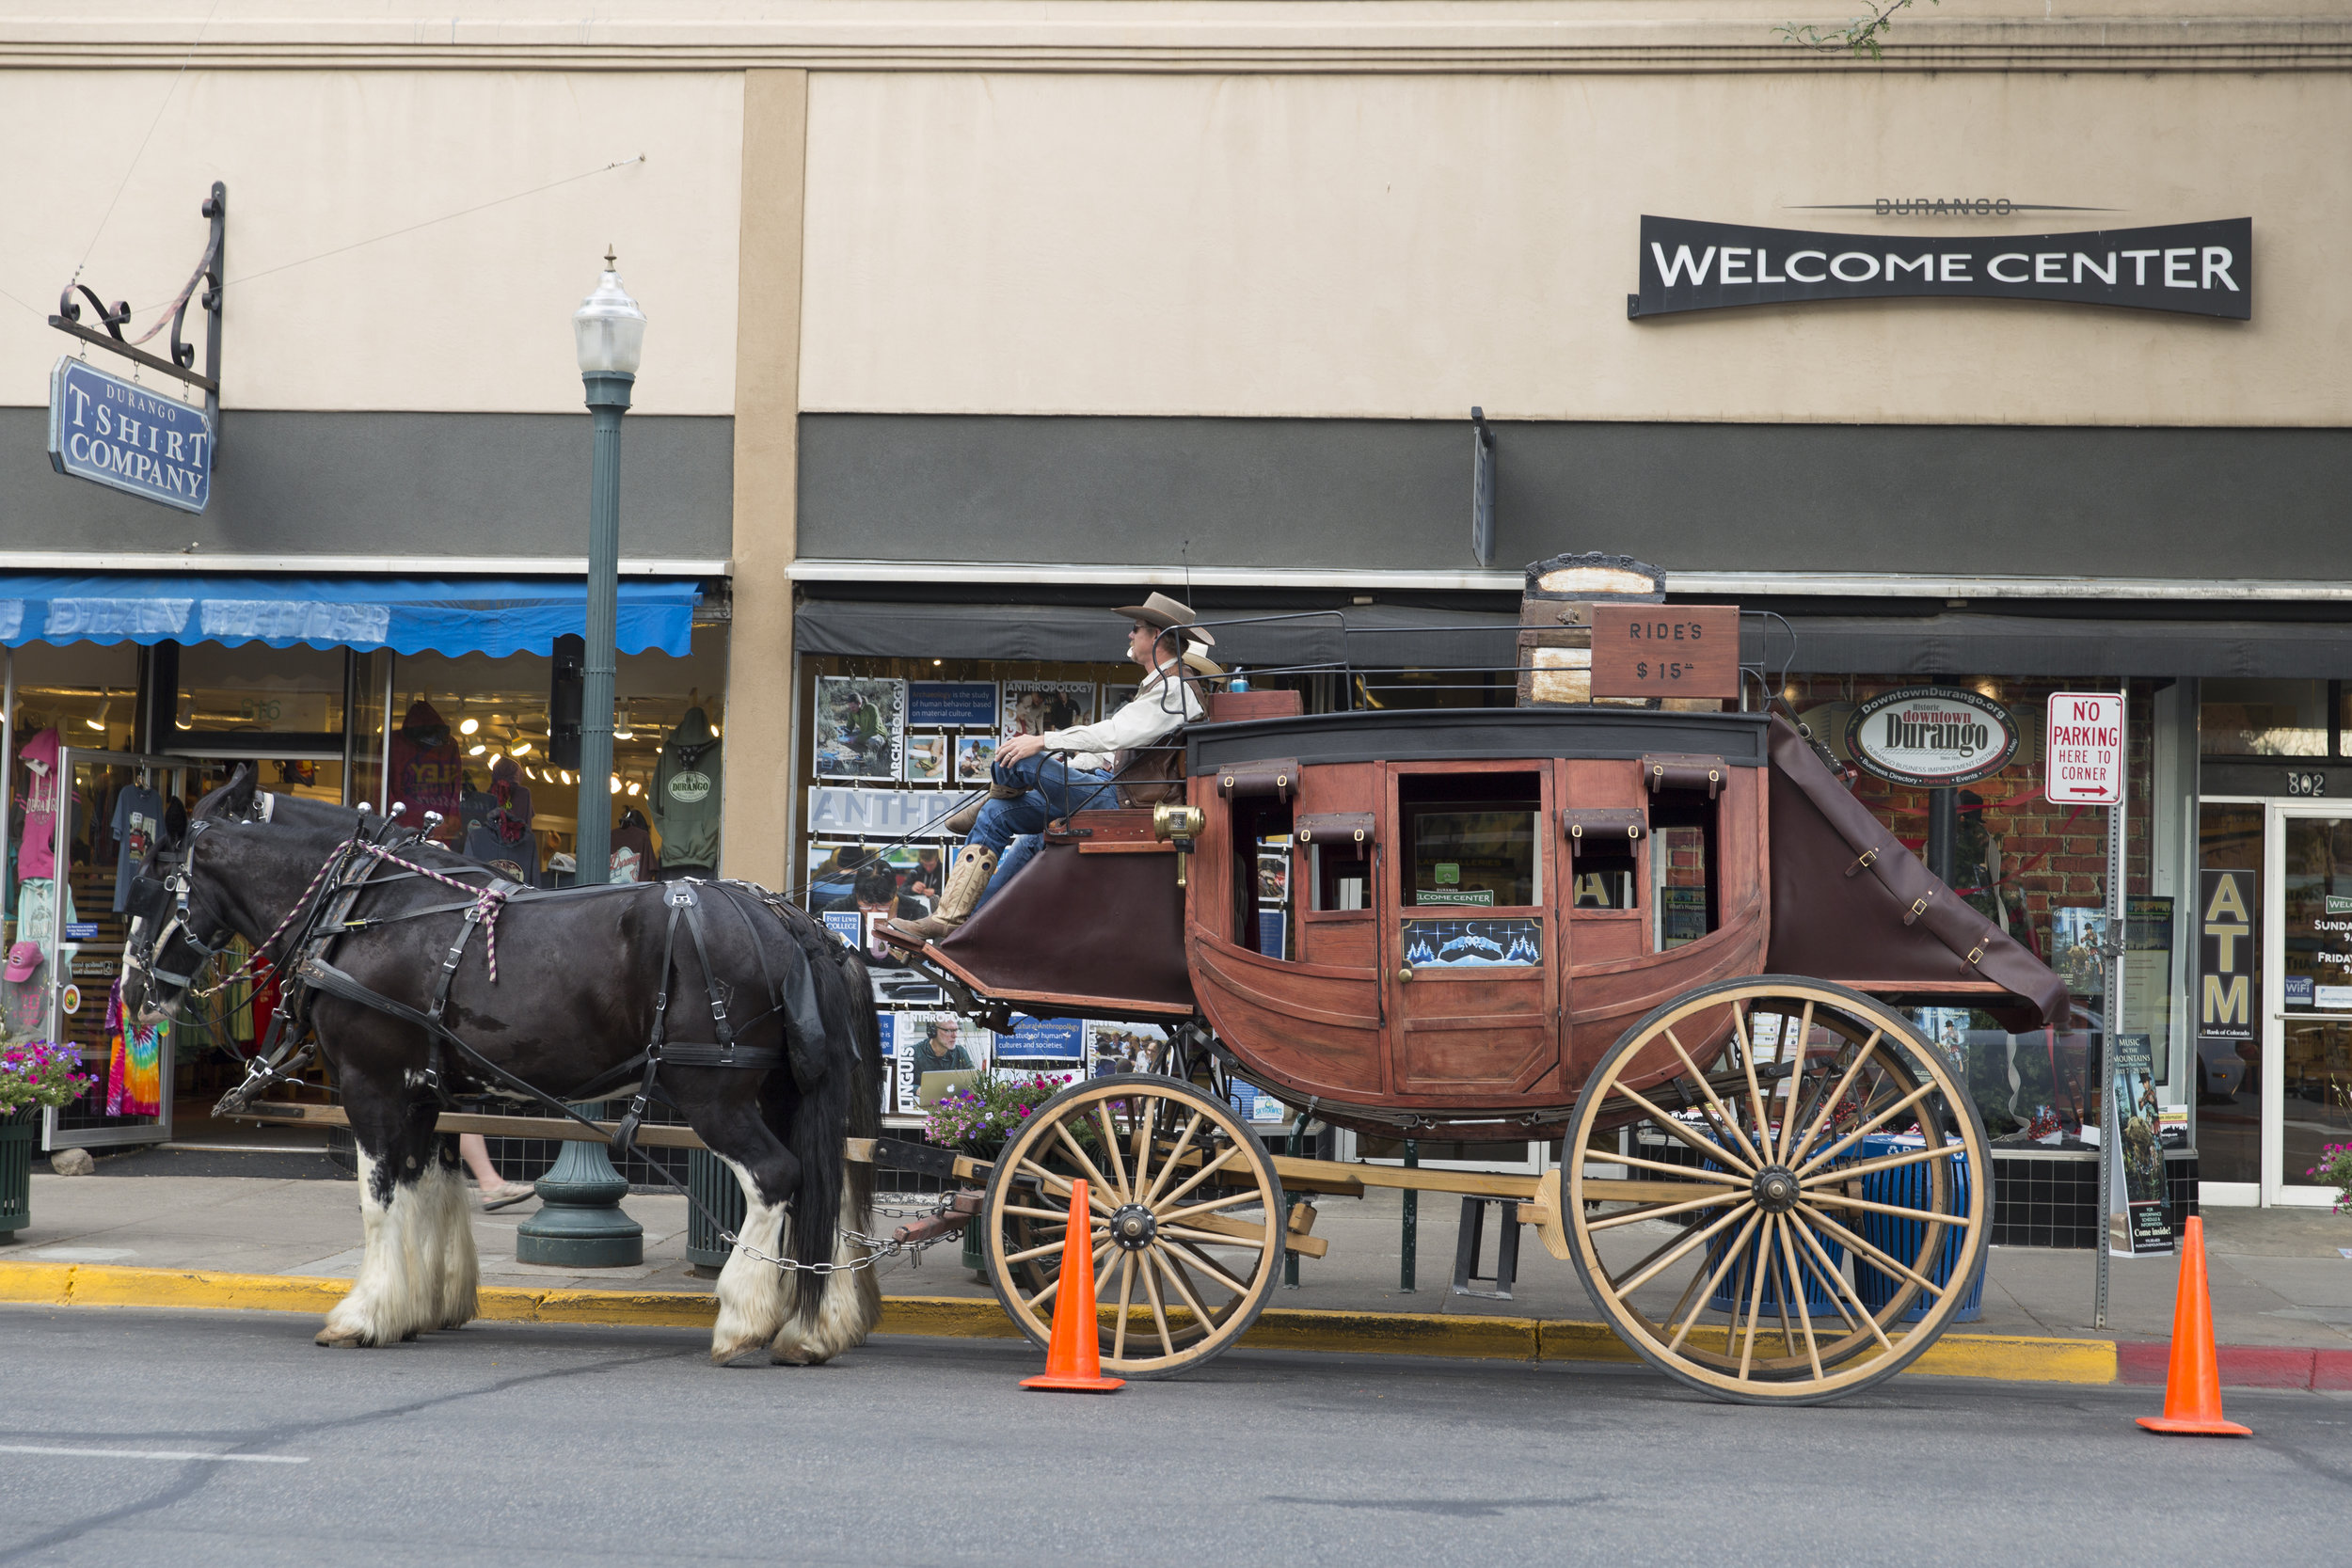 Old West attractions, such as this classic stagecoach, keep Durango's economy humming. But a growing population of homeless people and persistent panhandlers put a chill on the tourism industry, which led city officials to enact bans on sitting or lying on the streets. (Scott DW Smith, Special to The Colorado Sun)